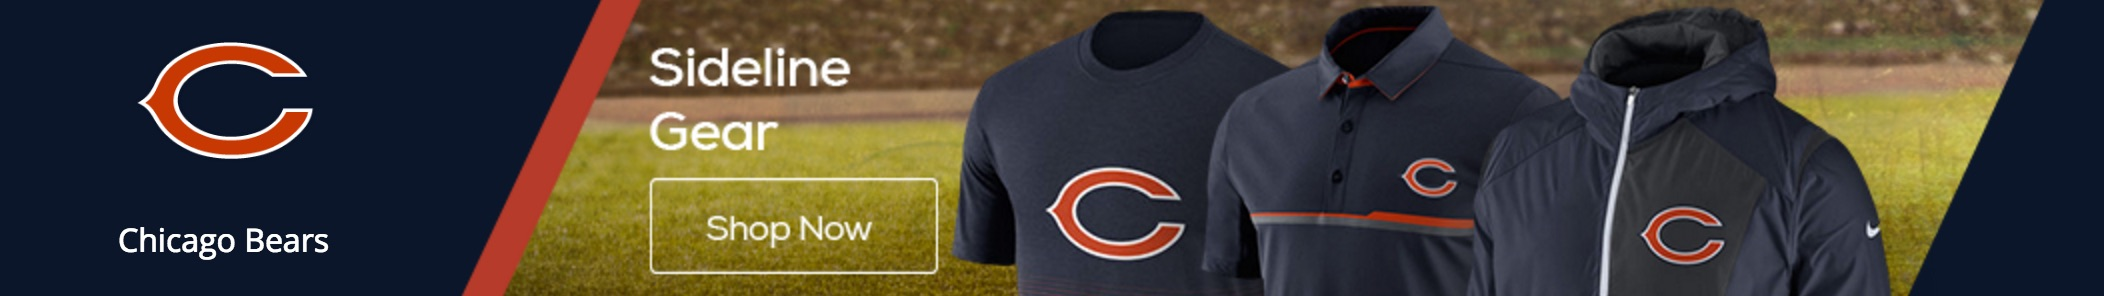 Shop Chicago Bears apparel at the TrueSportsMovies Fan Store